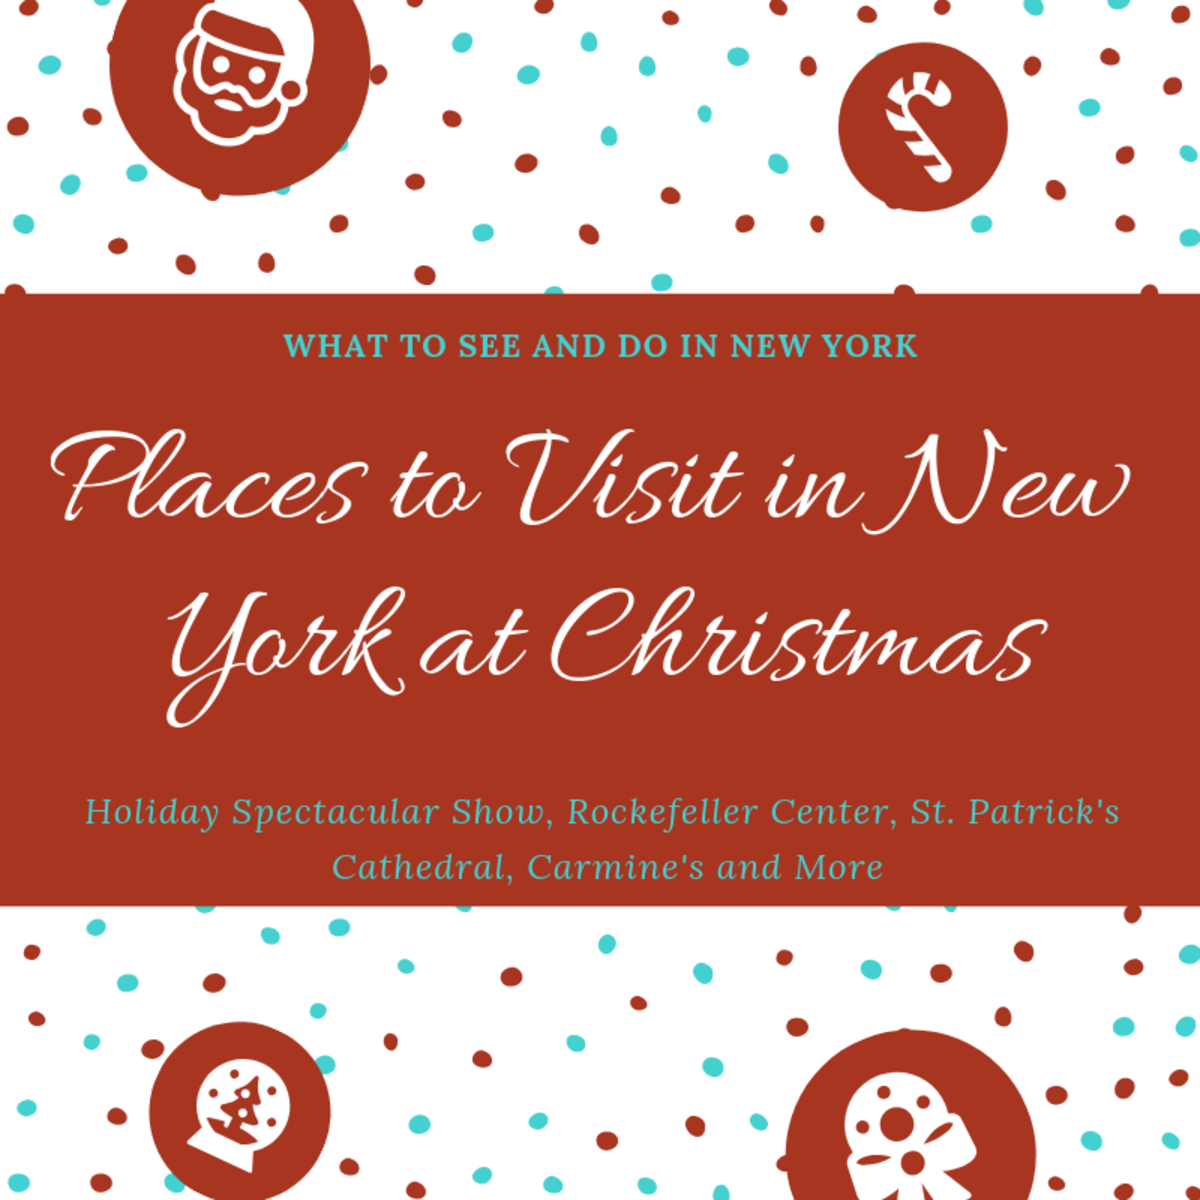 Places to Visit in New York at Christmas